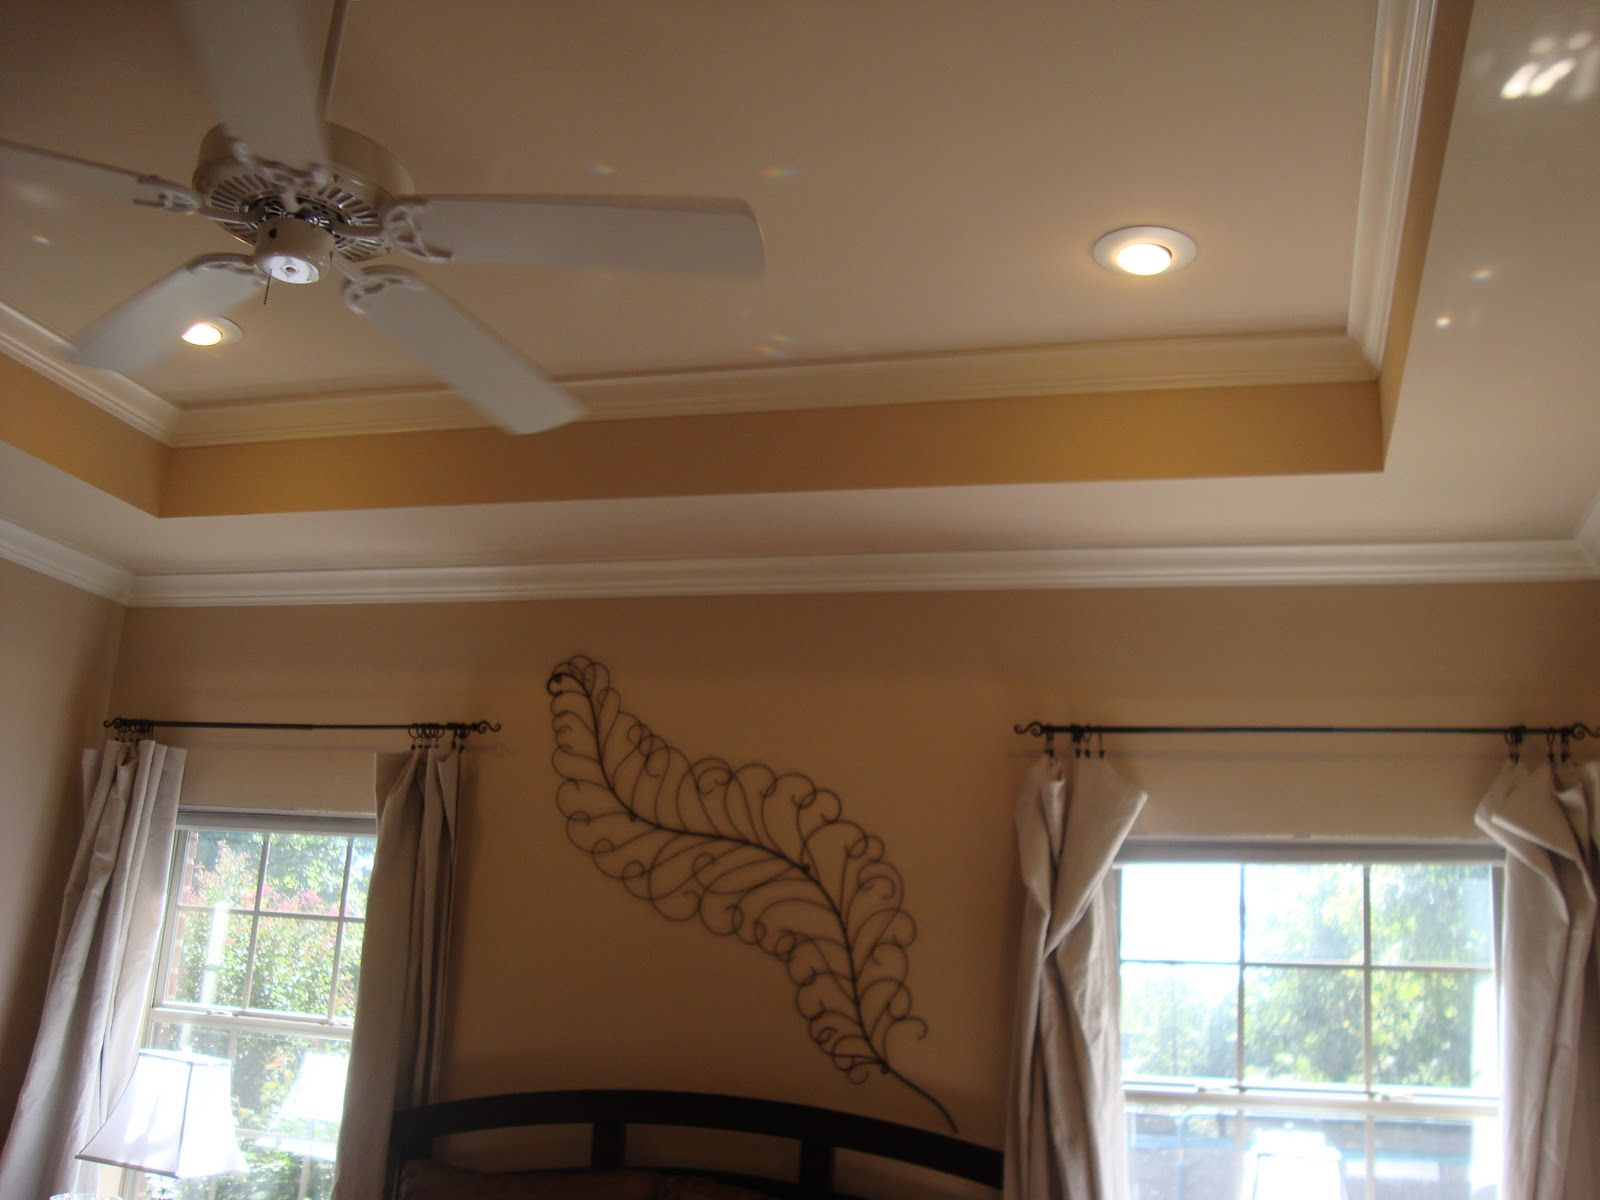 Bedroom ceiling paint ideas - Bedroom Tray Ceiling Molding Painting Ideas